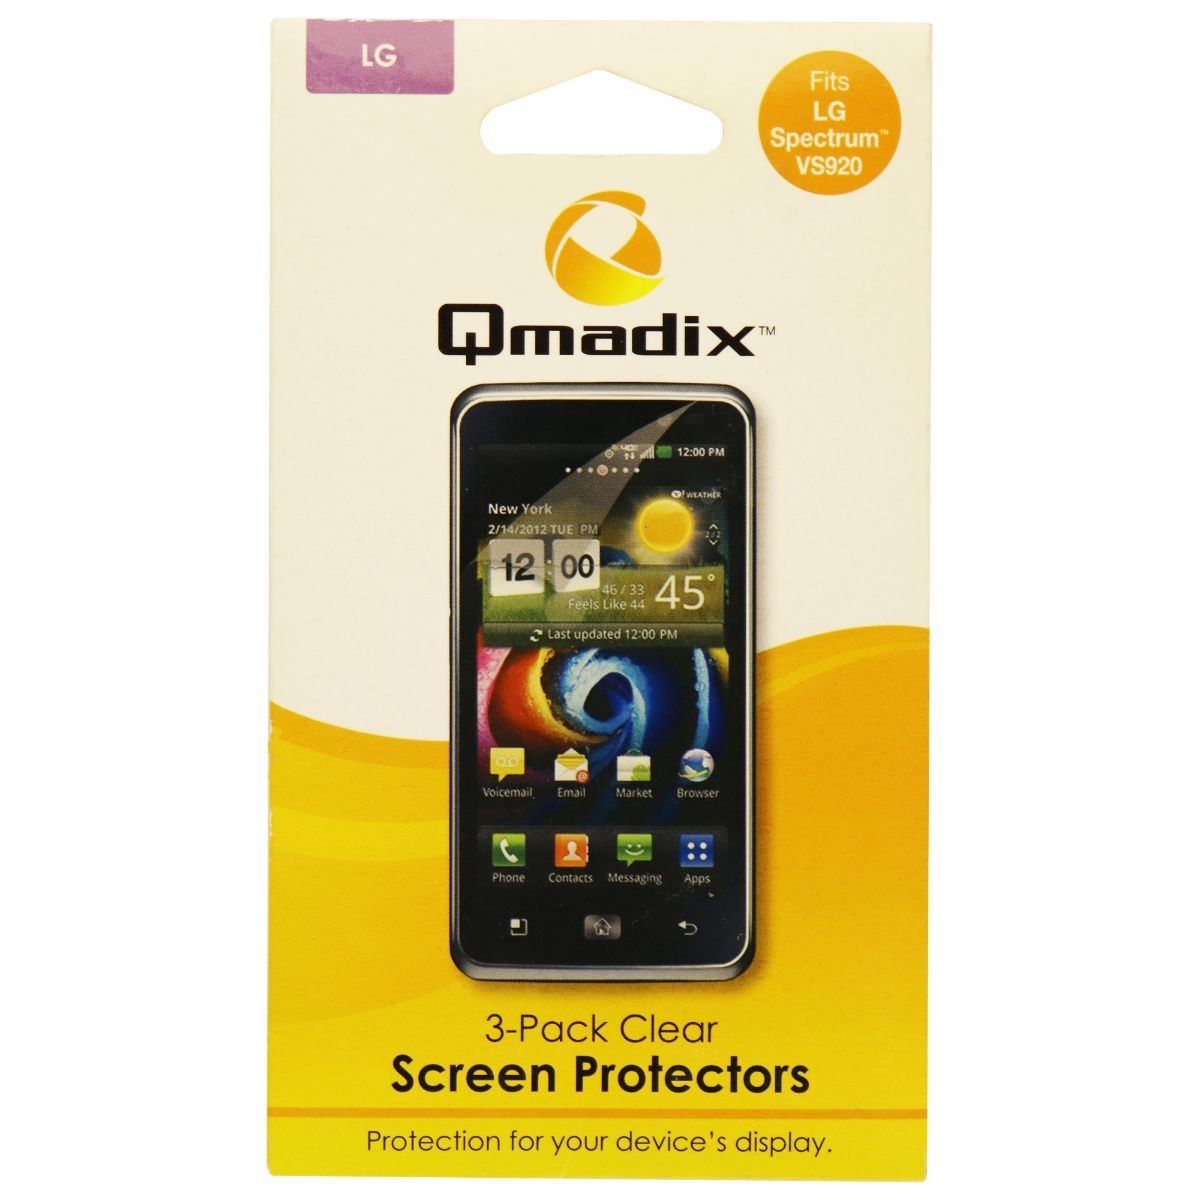 Qmadix Screen Protector 3-Pack for LG Spectrum VS920 - Clear